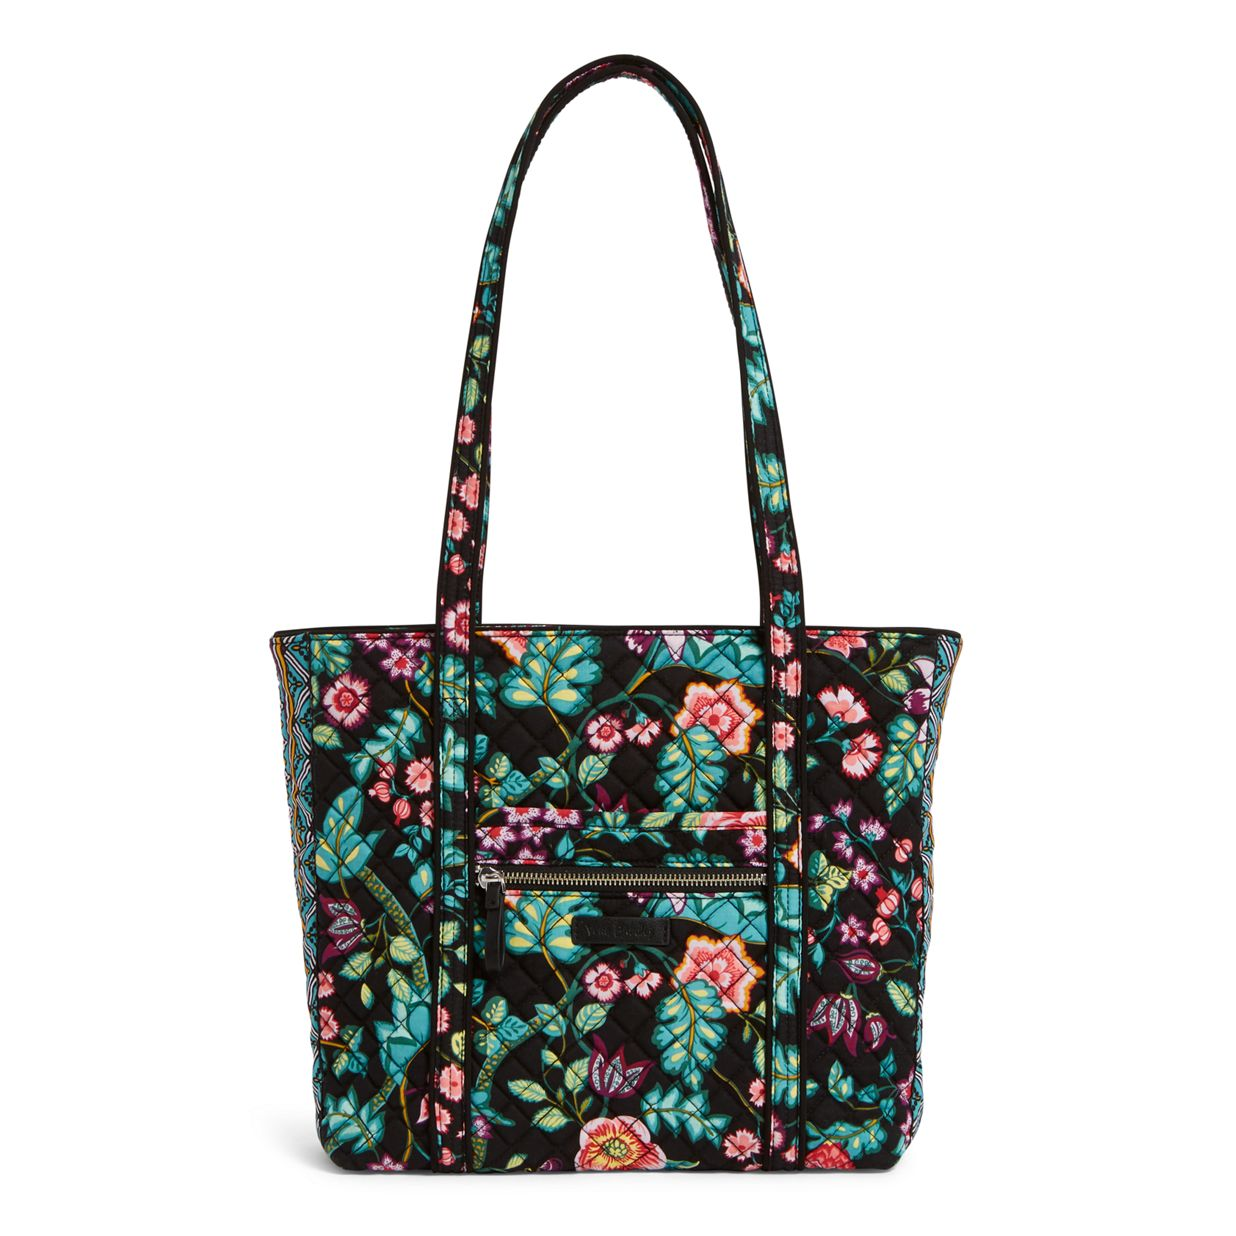 Image of Iconic Small Vera Tote in Vines Floral ... 0b254cd481d04